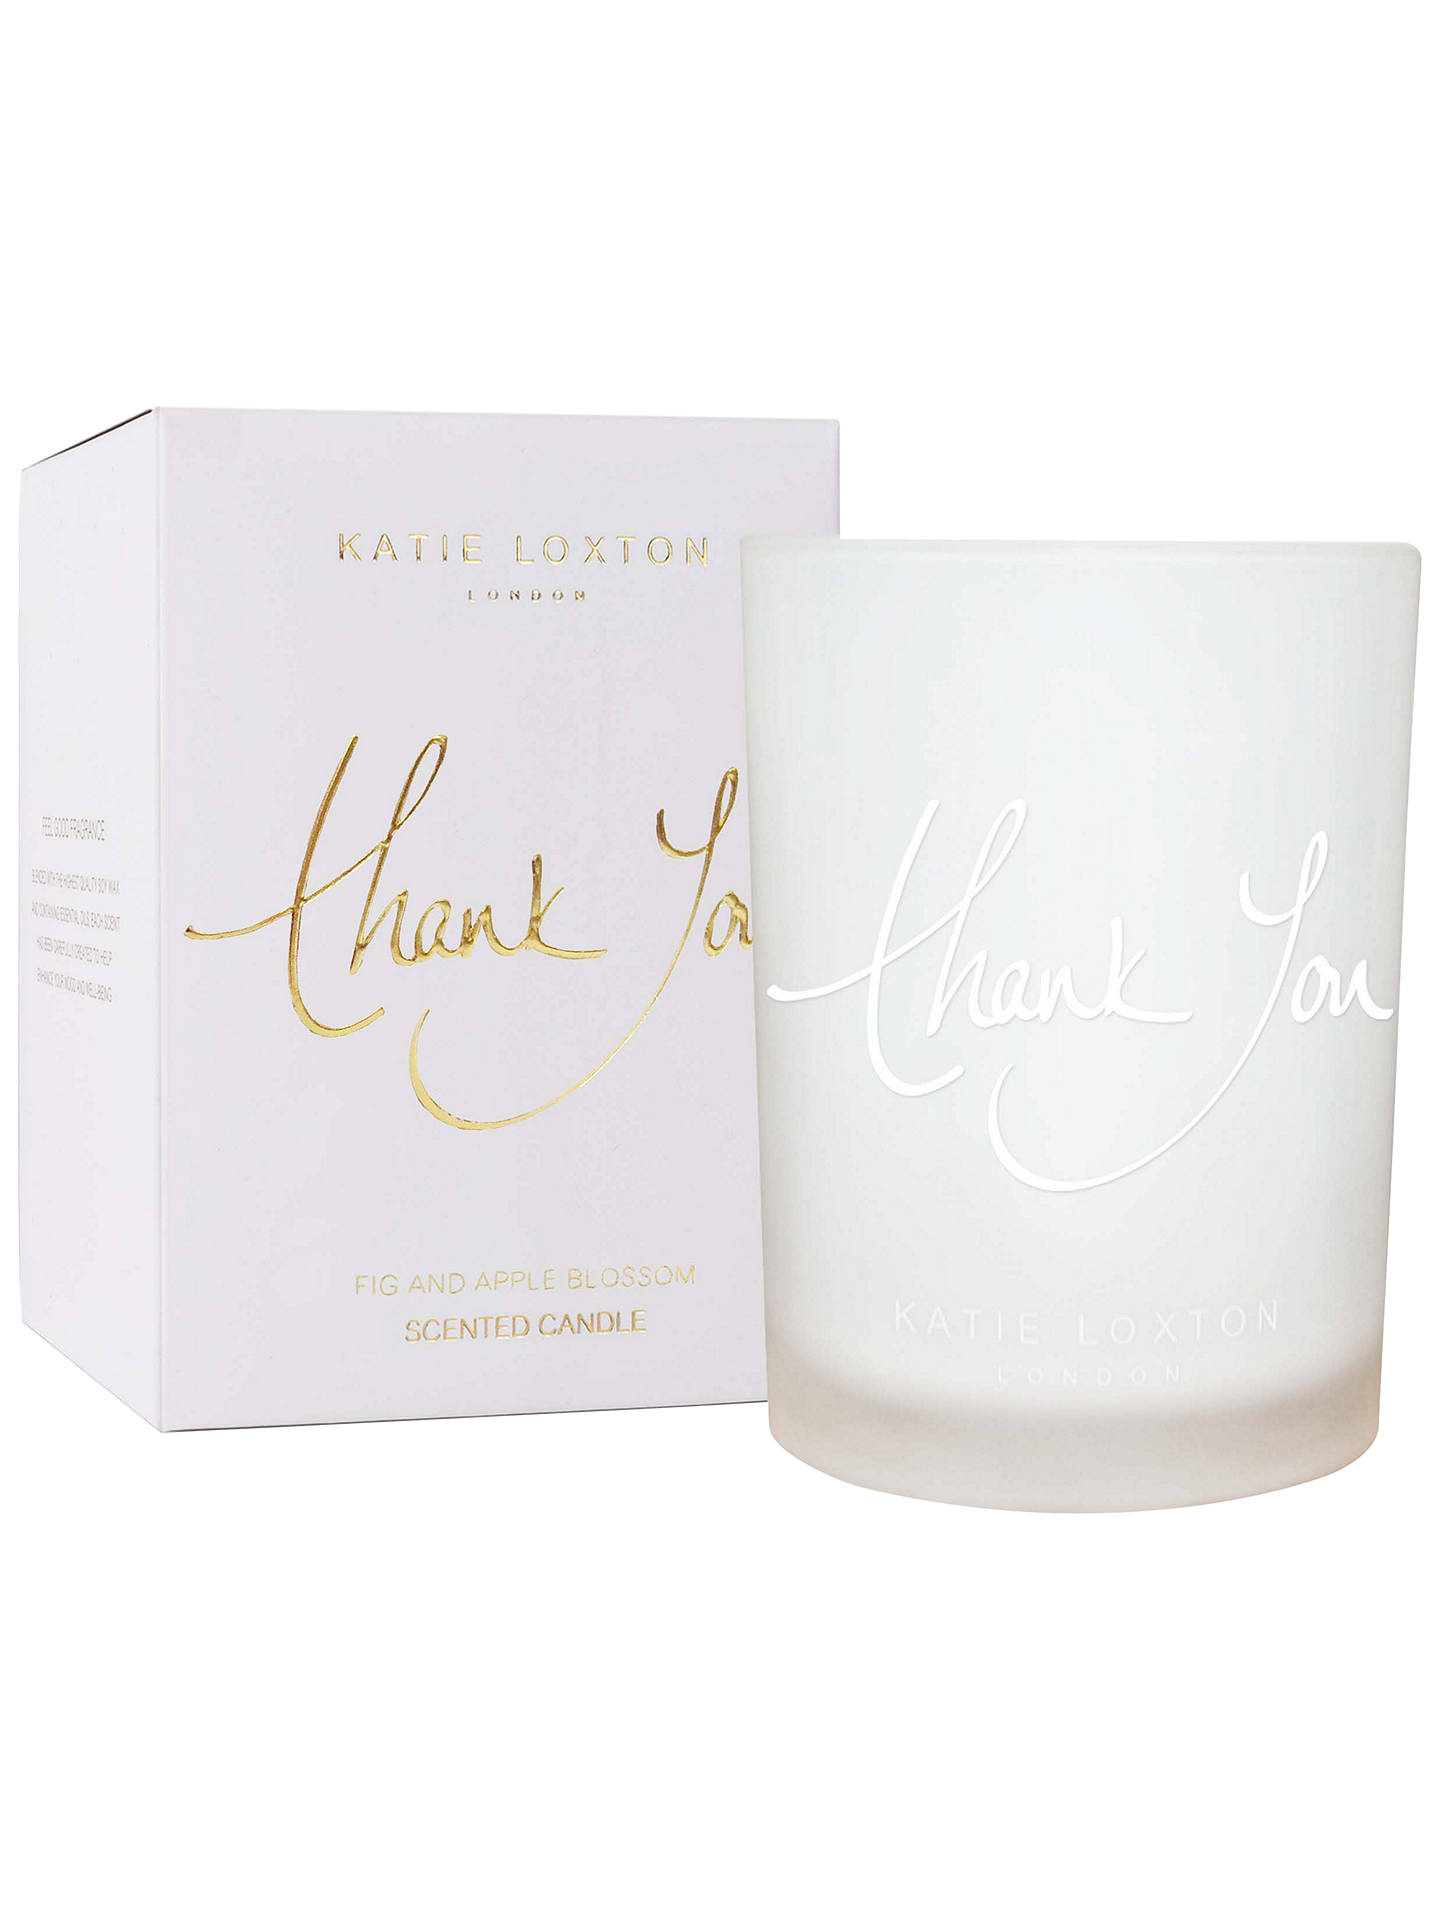 Buy Katie Loxton 'Thank you' Fig and Apple Blossom Scented Candle Online at johnlewis.com